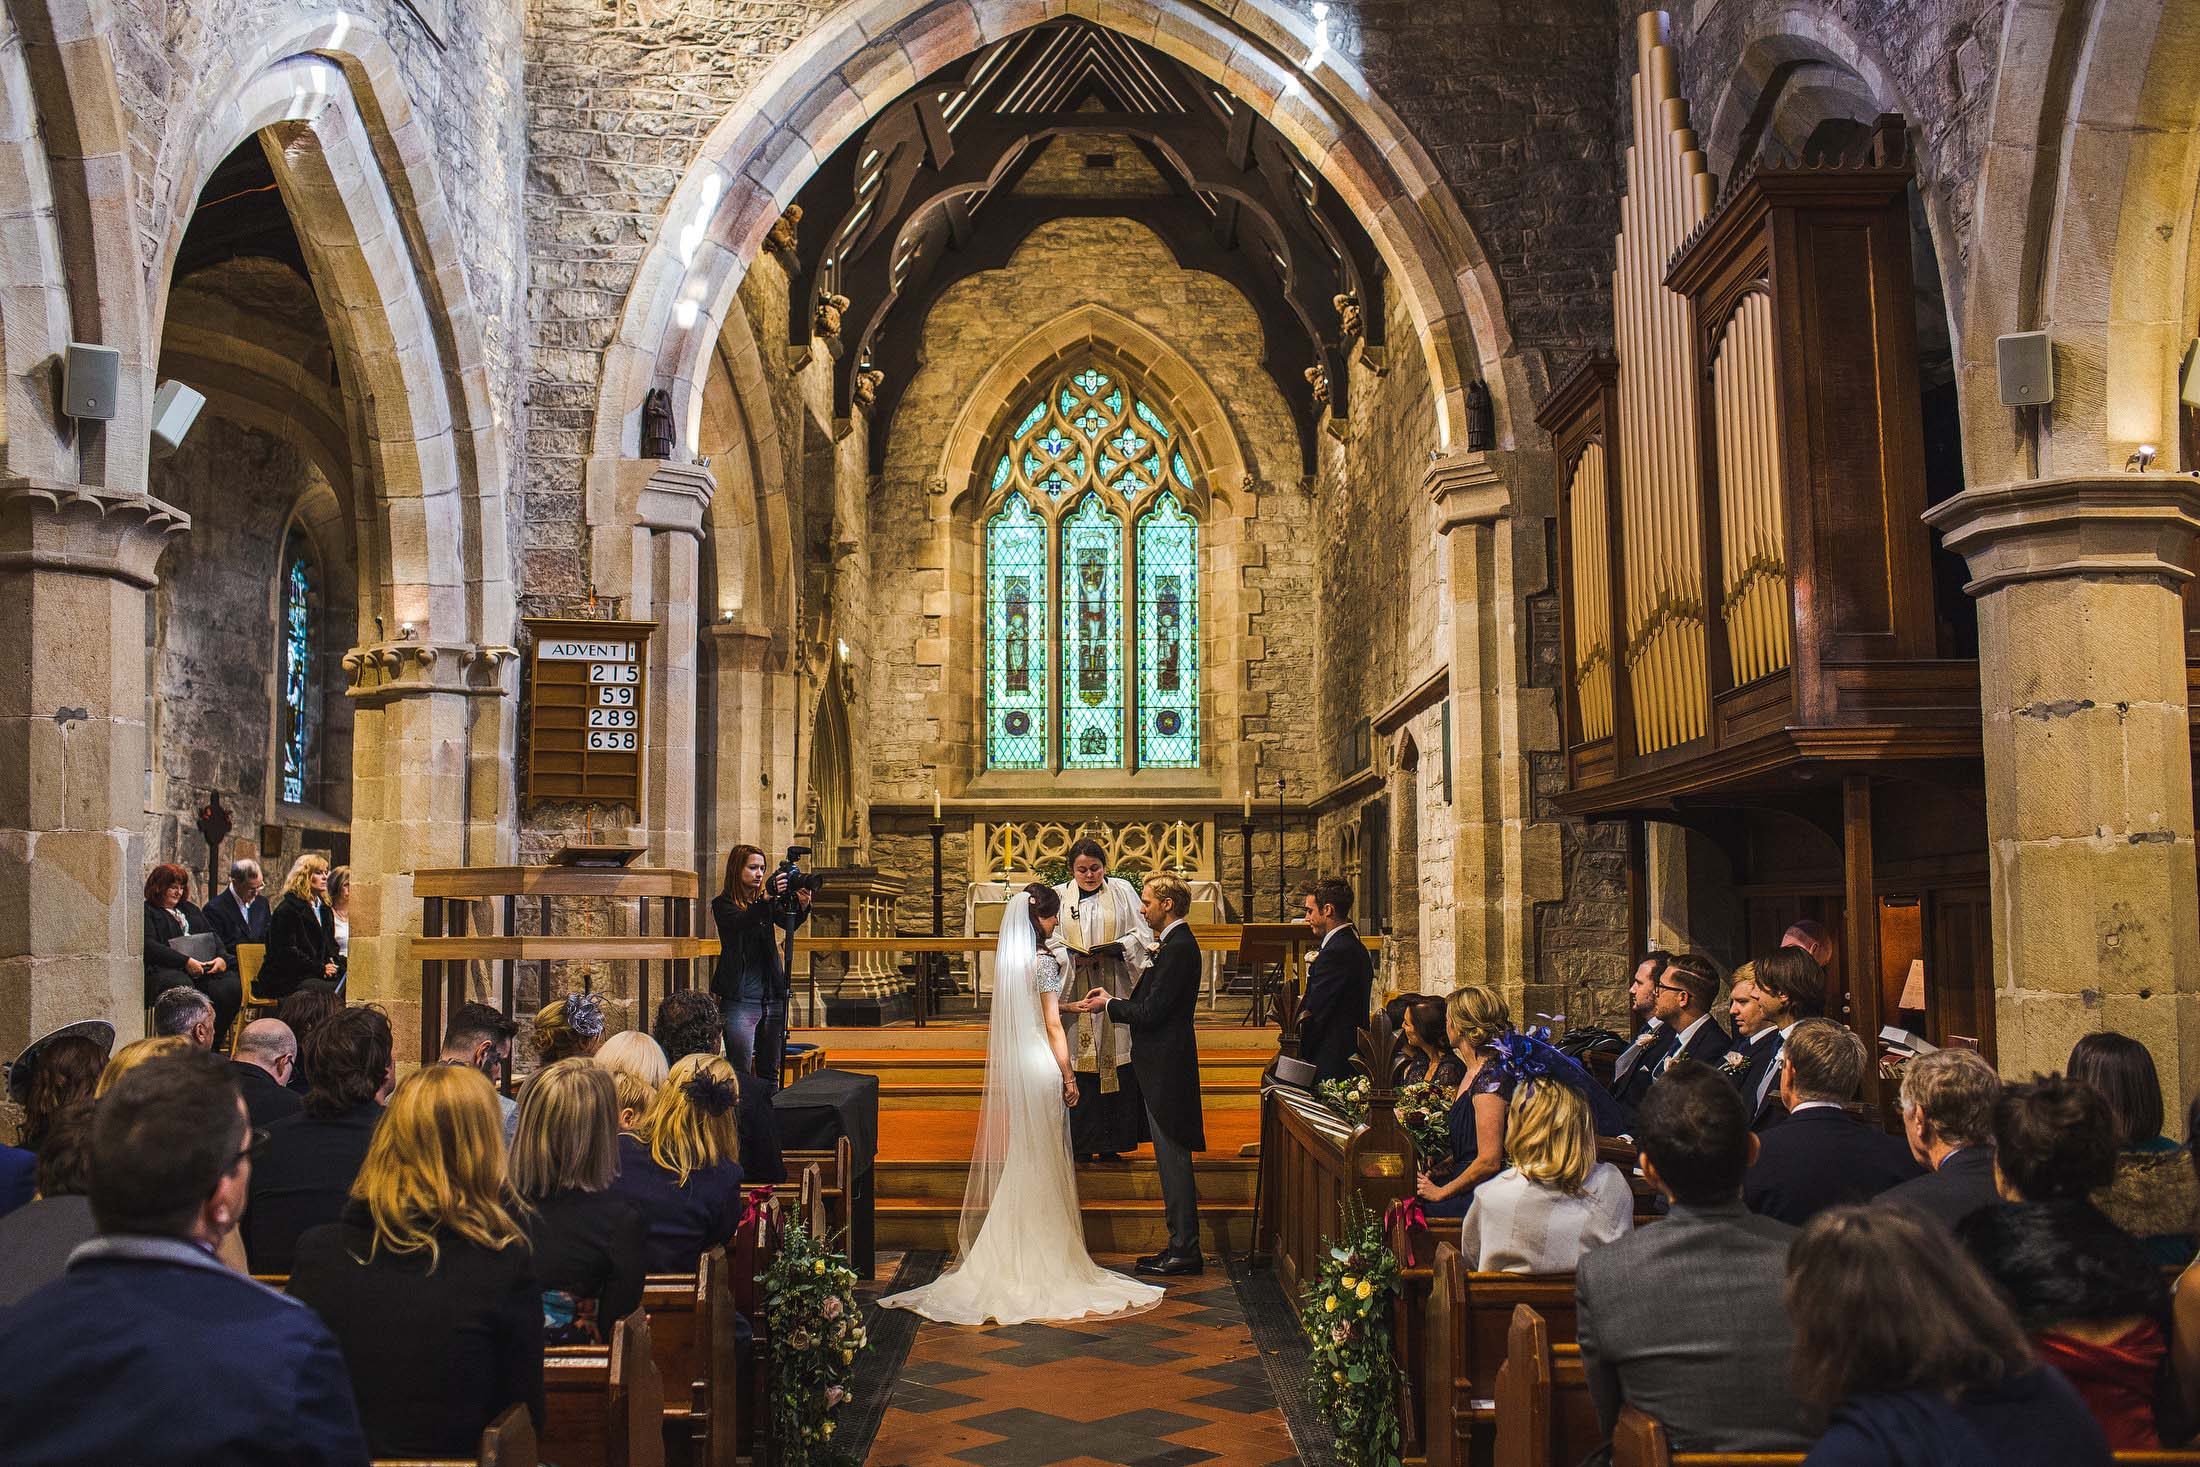 Hathersage wedding